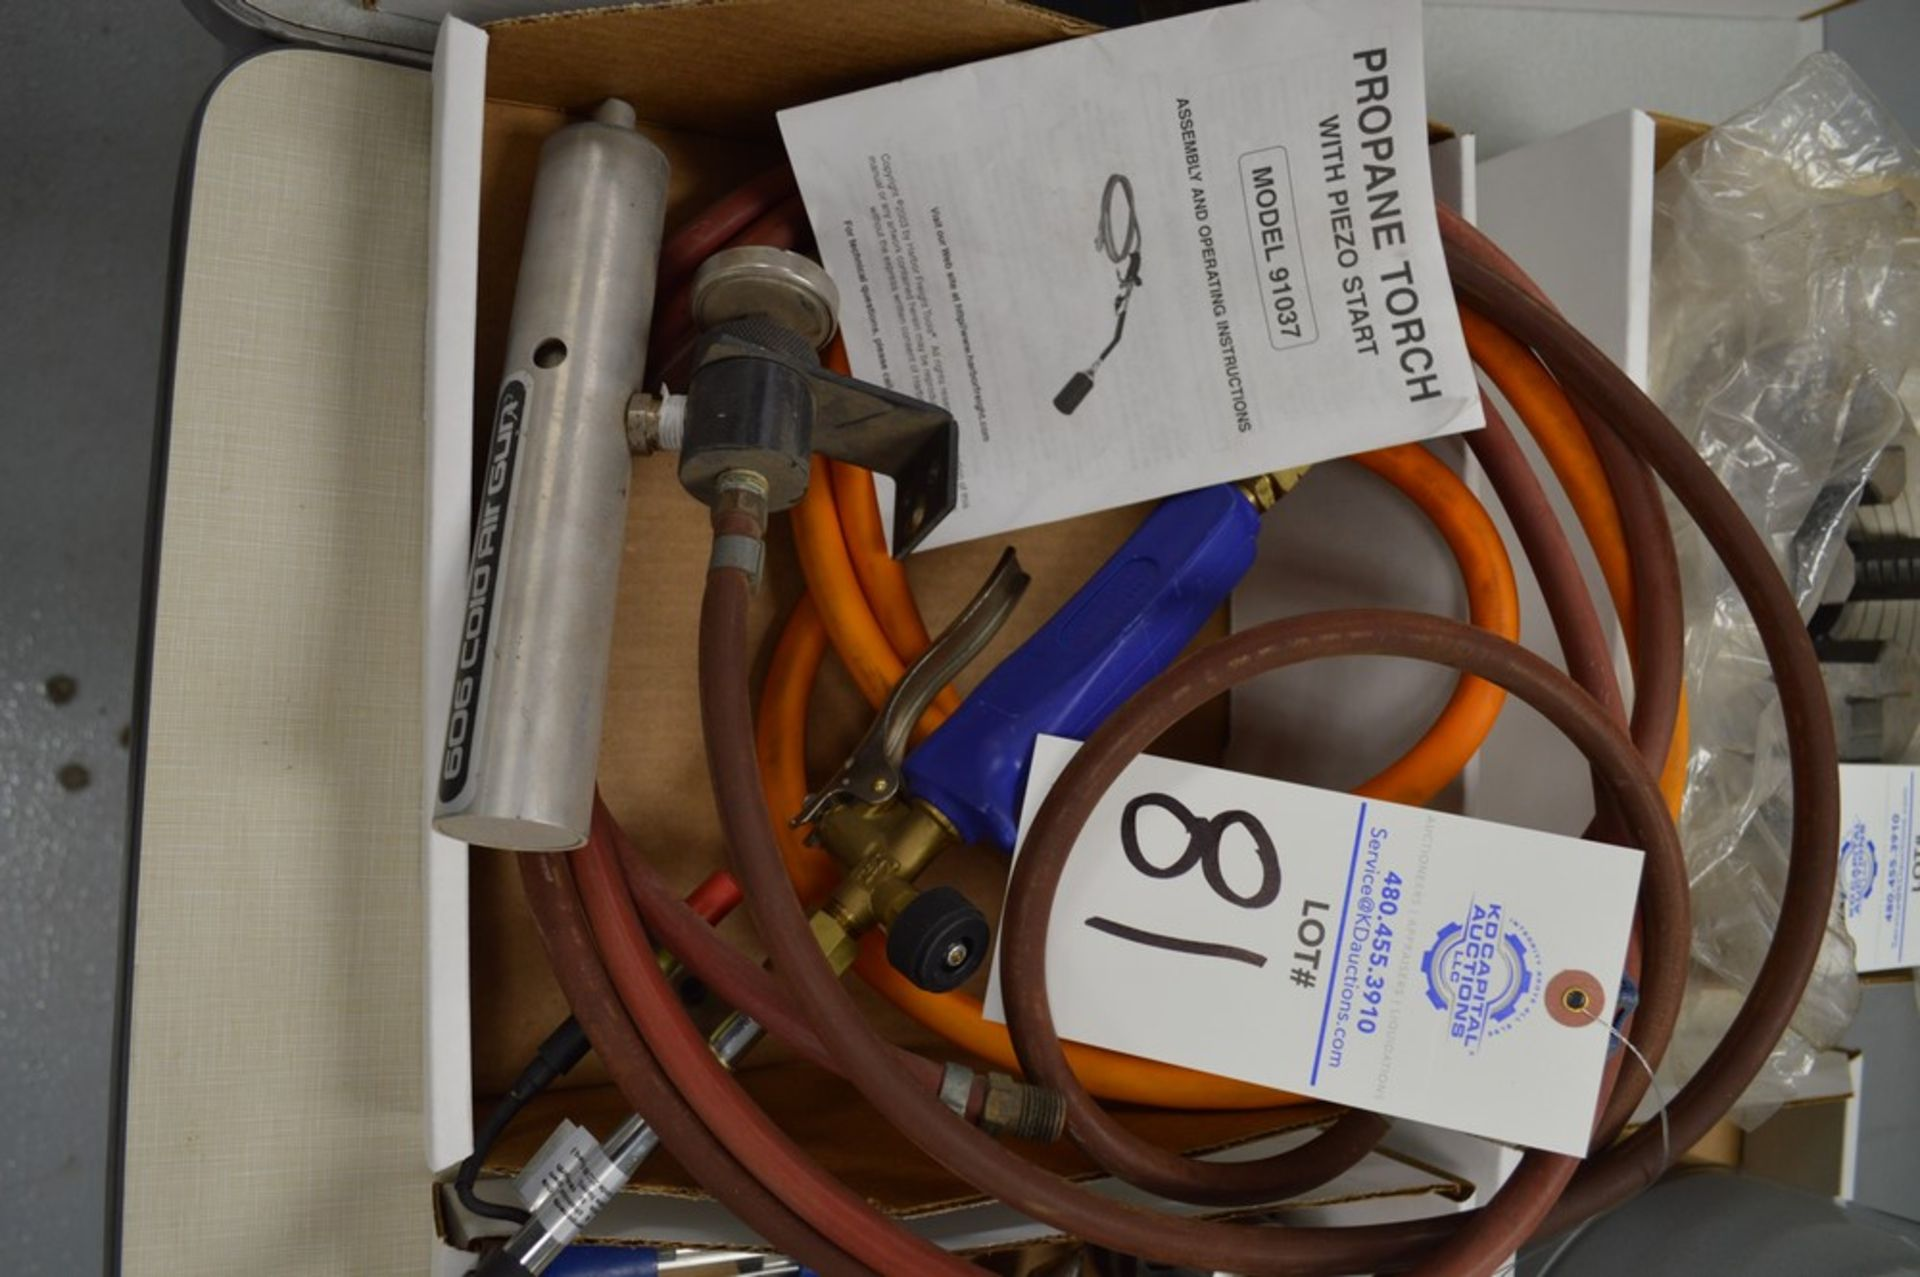 """606 Cold Air gun and model 91037 propane torch with 1/4"""" NPT air inlet"""